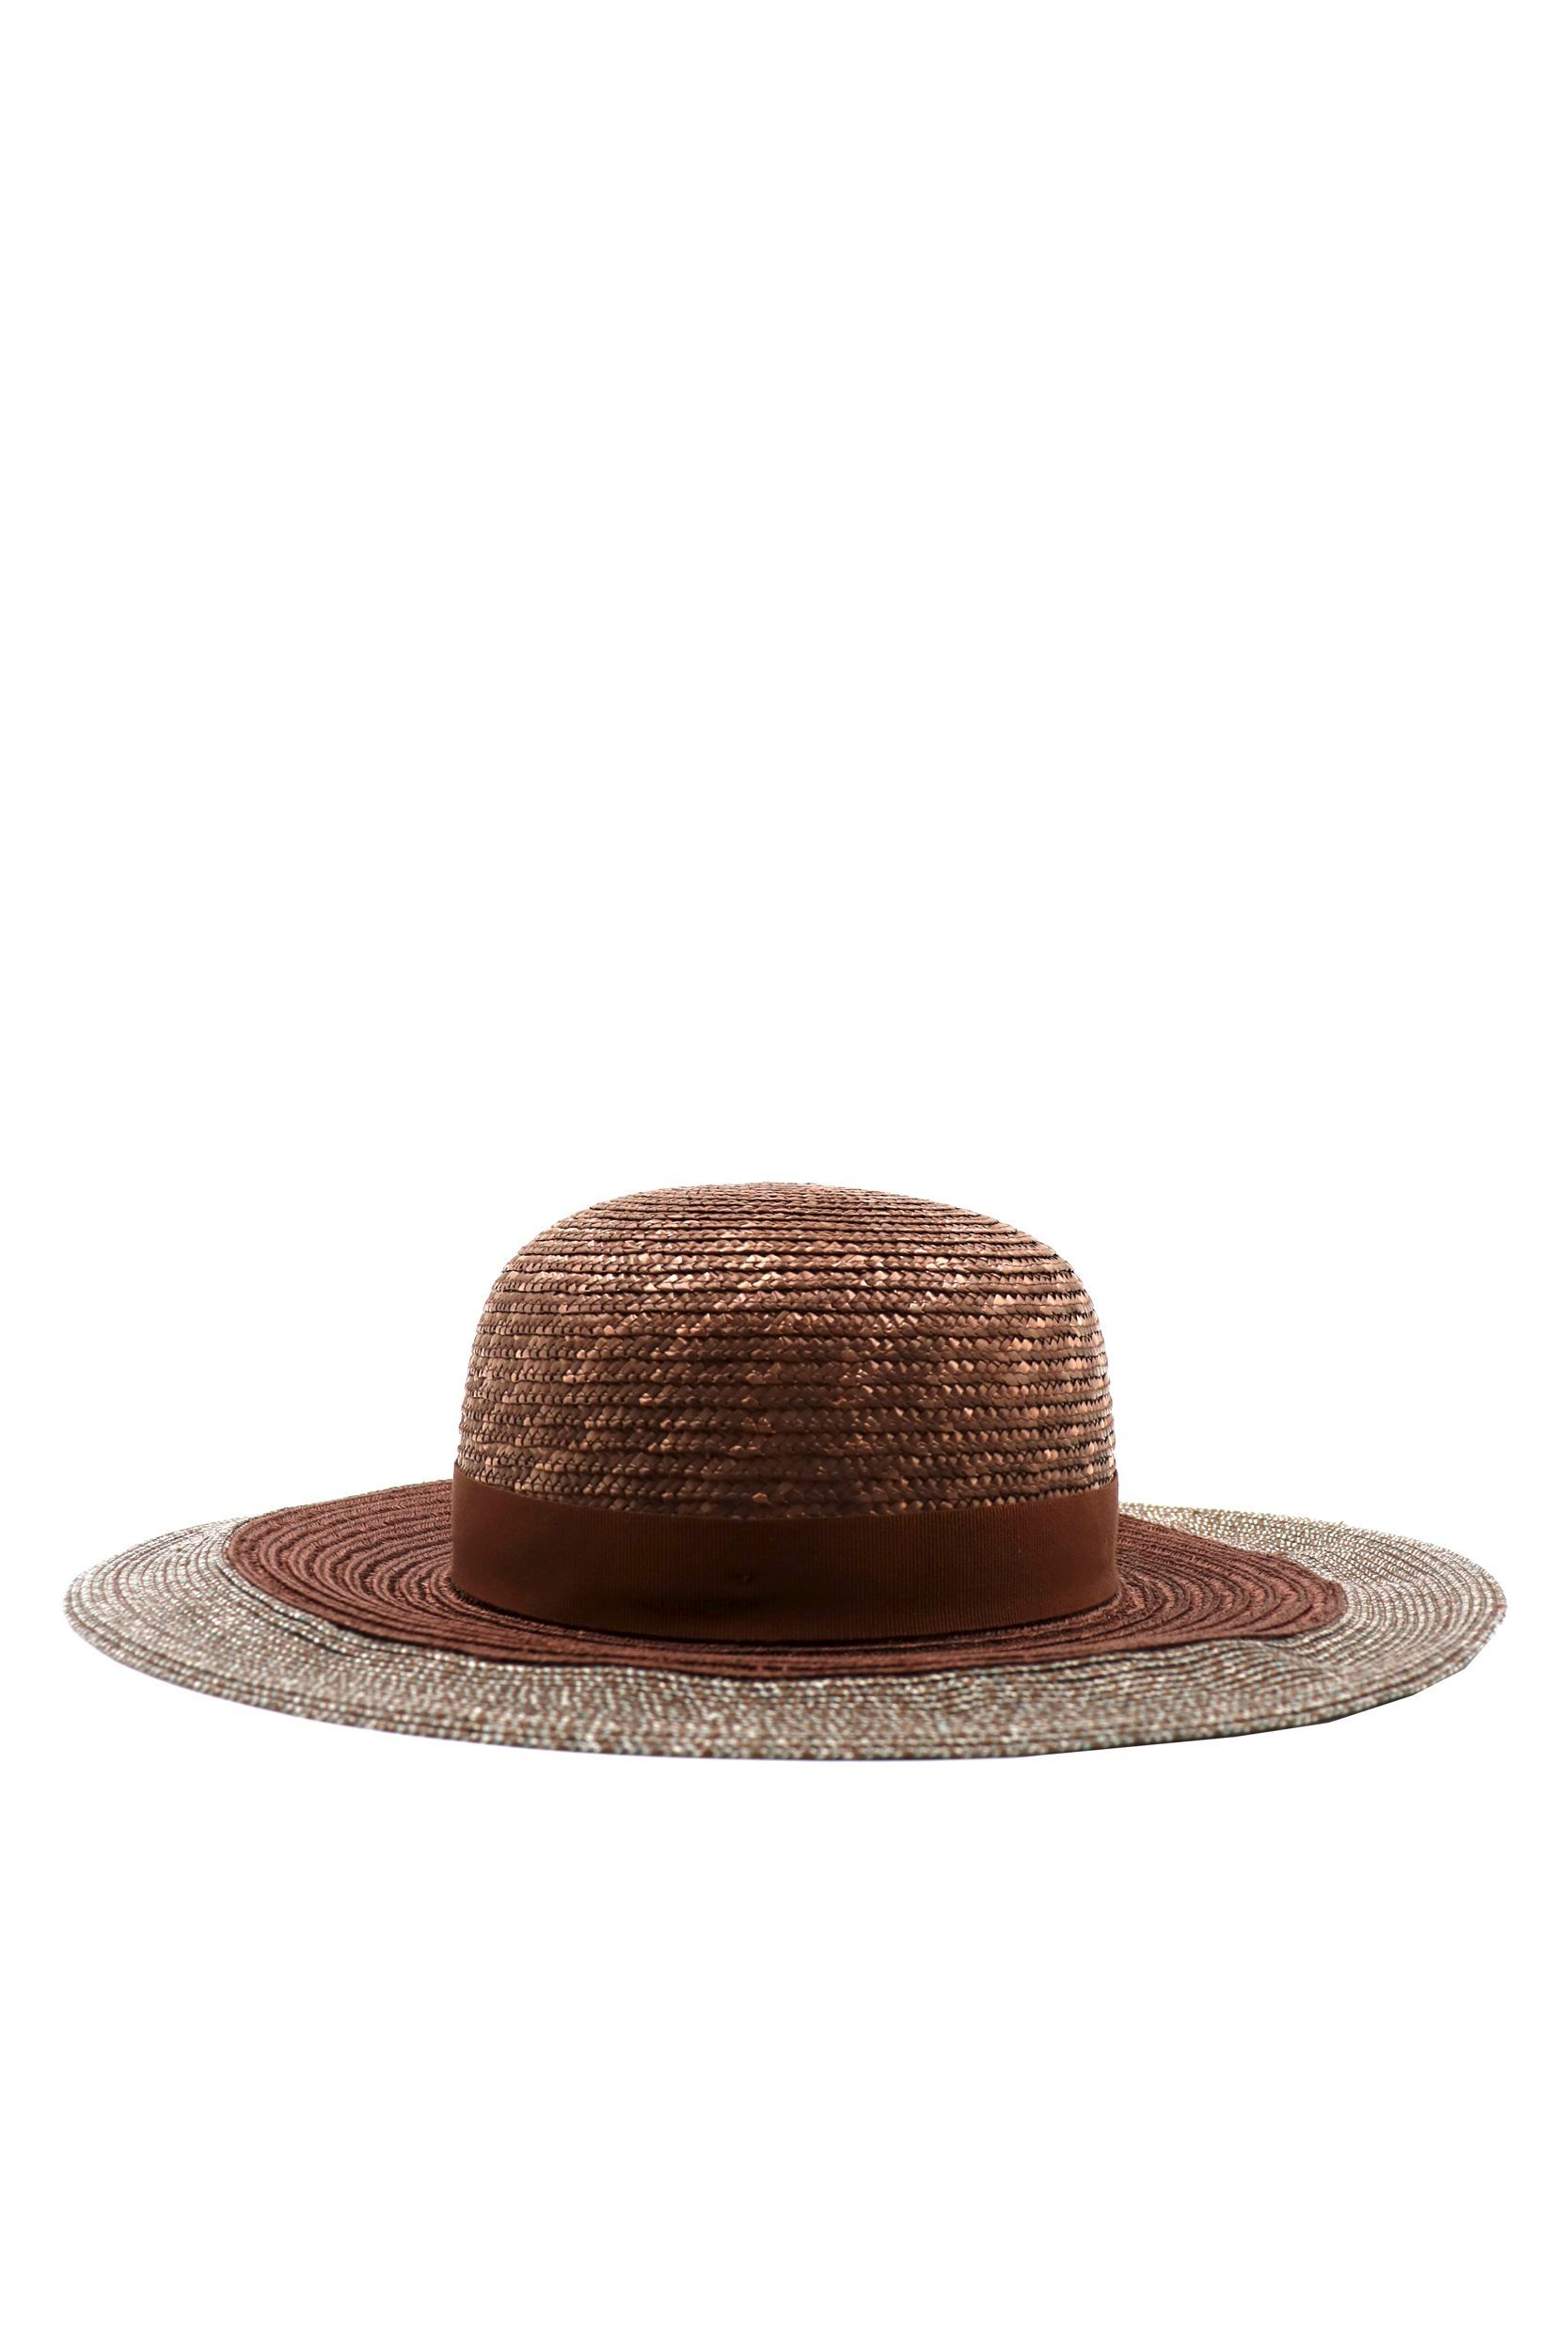 ELEVENTY WOMEN'S A80CPLA01TES0A15105 BROWN OTHER MATERIALS HAT